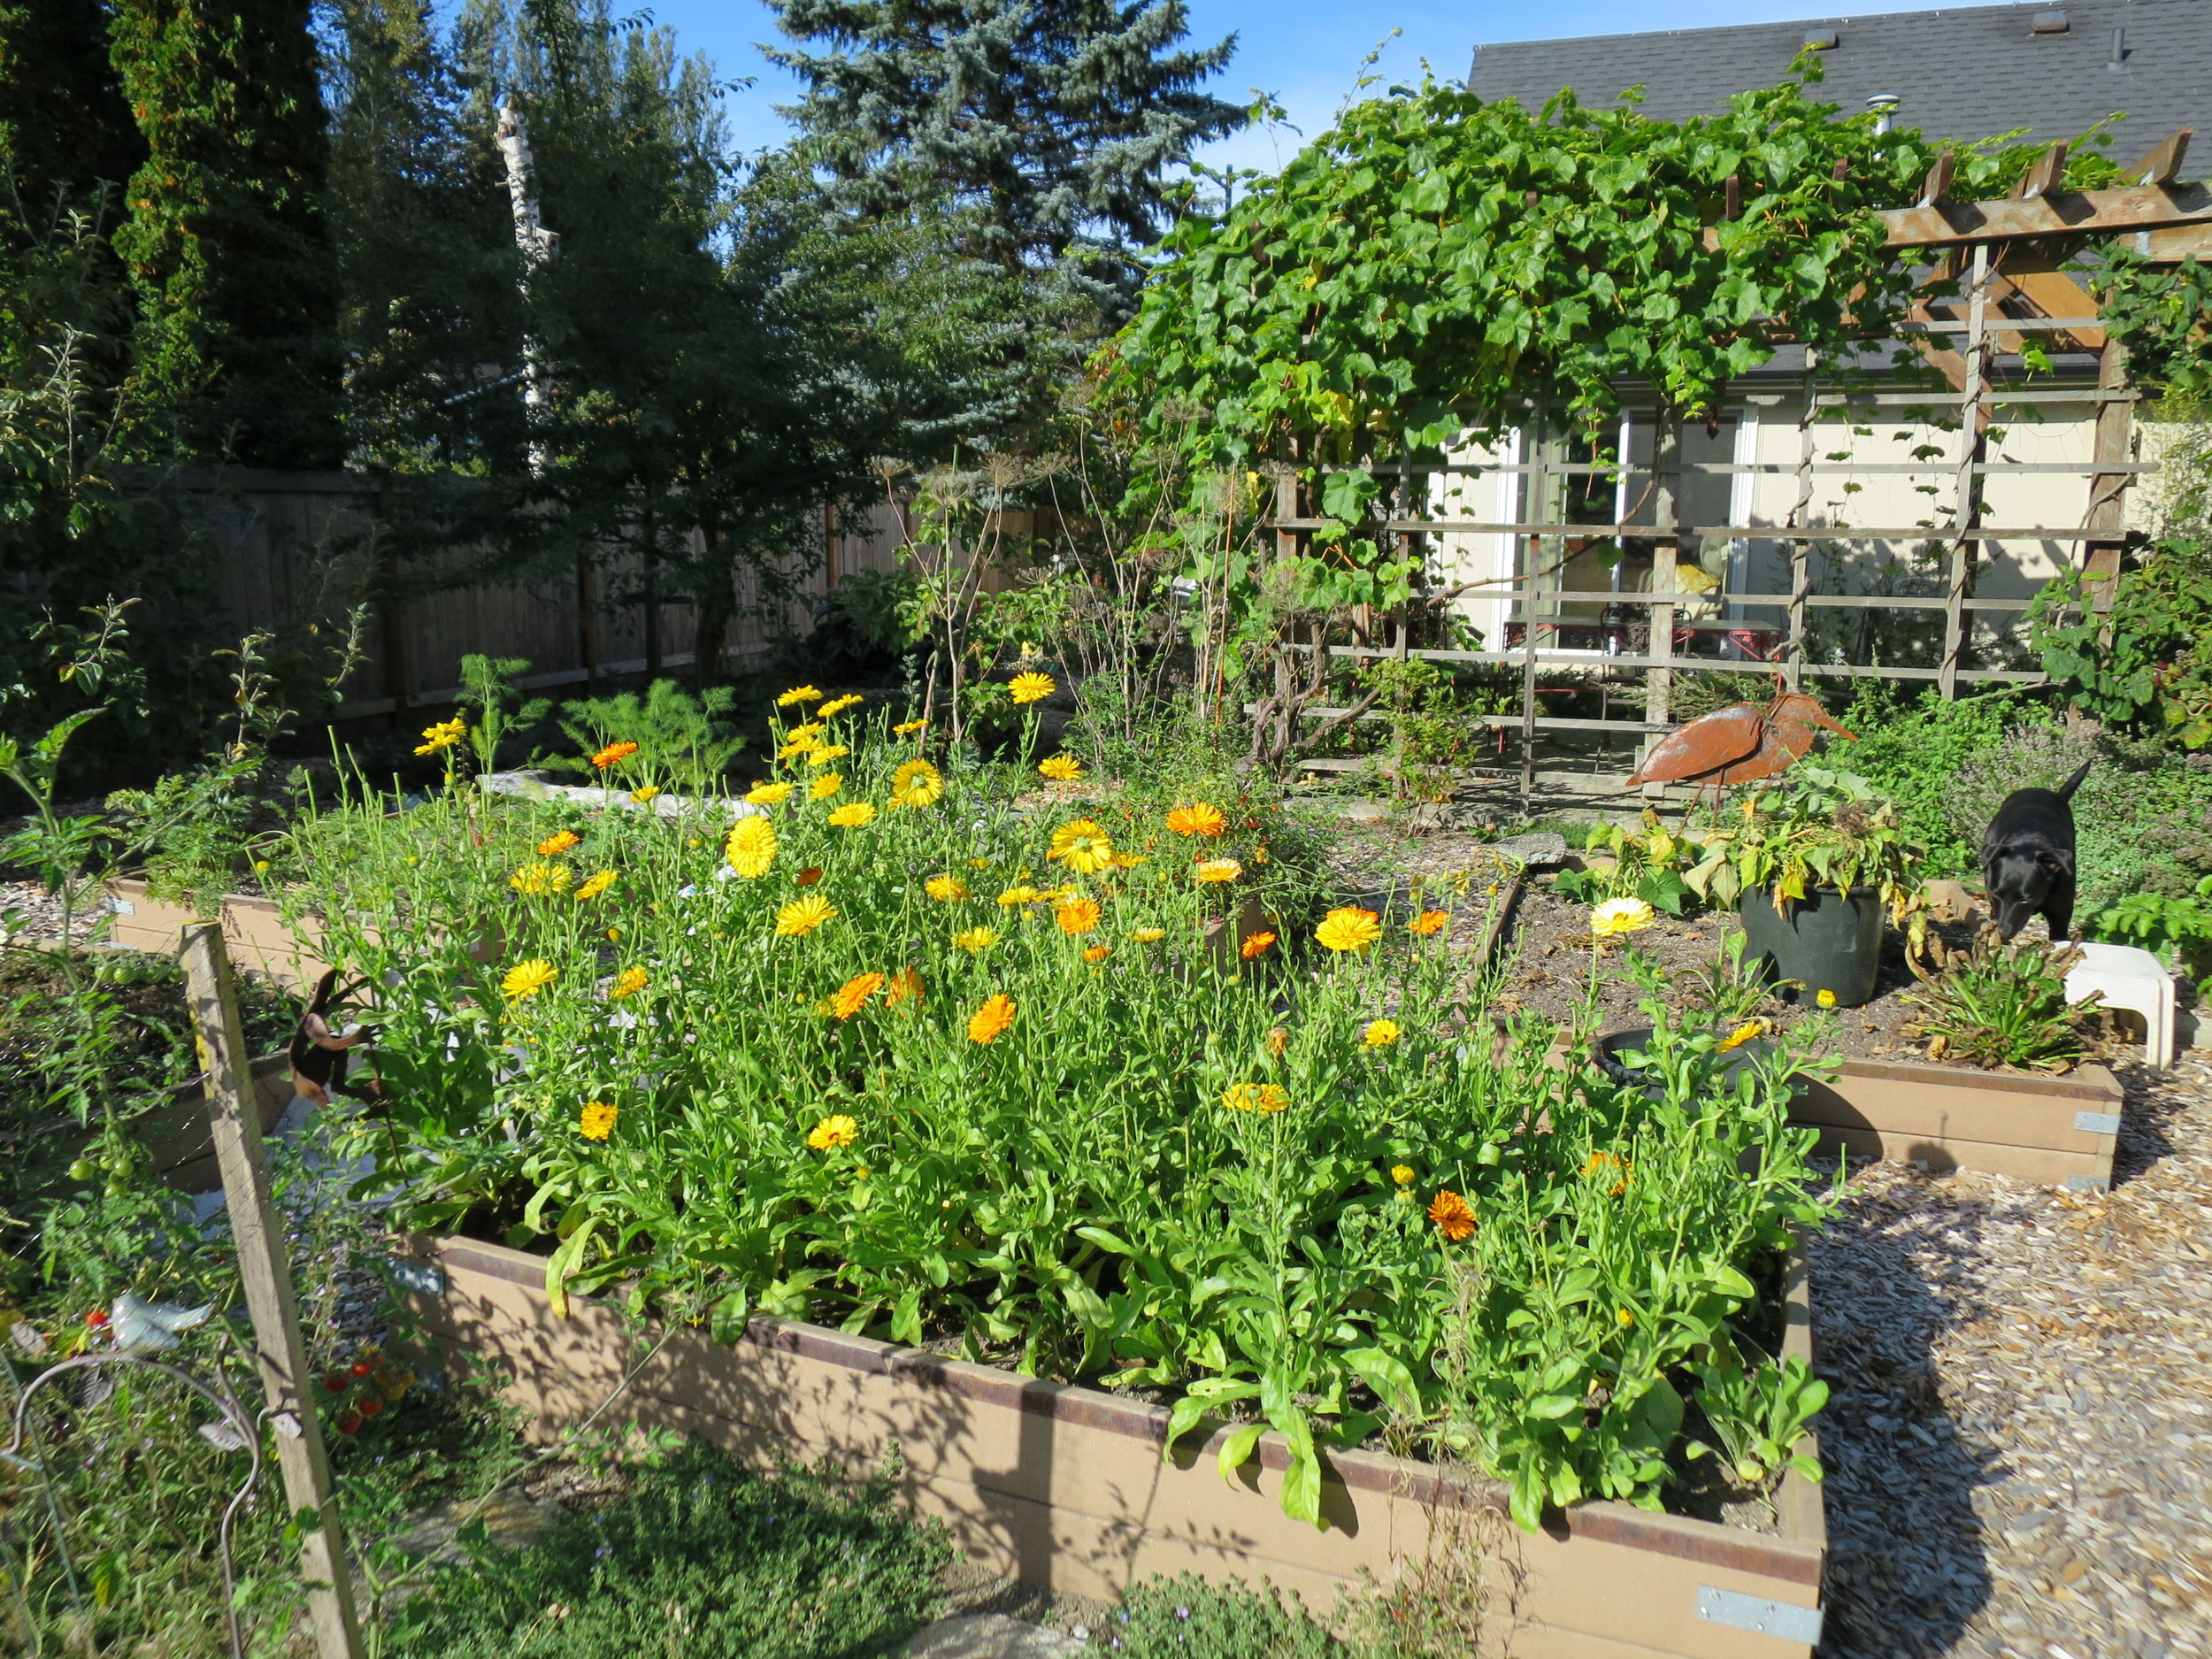 Lots of raised beds